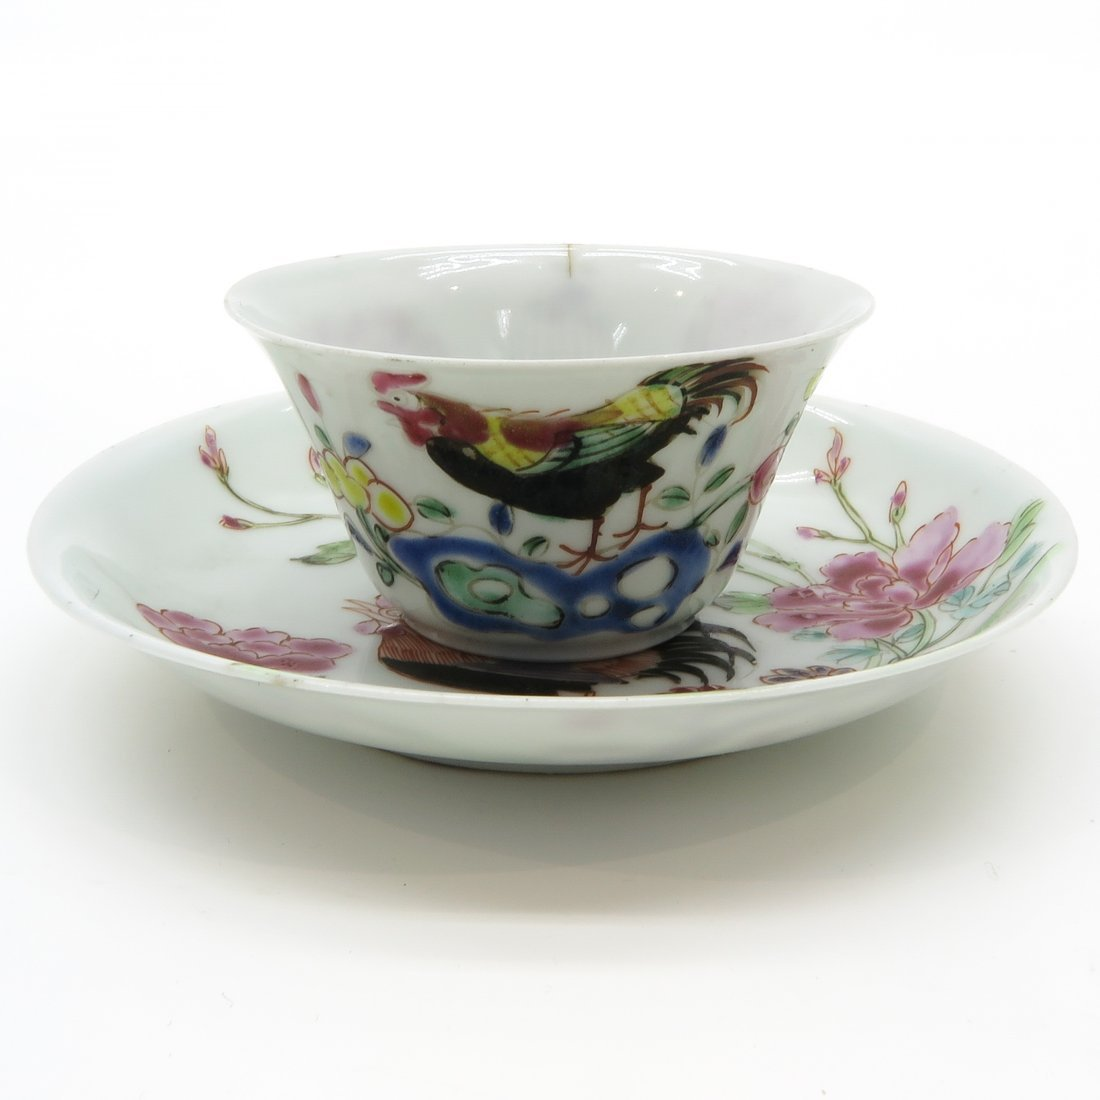 18th Century China Porcelain Cup & Saucer